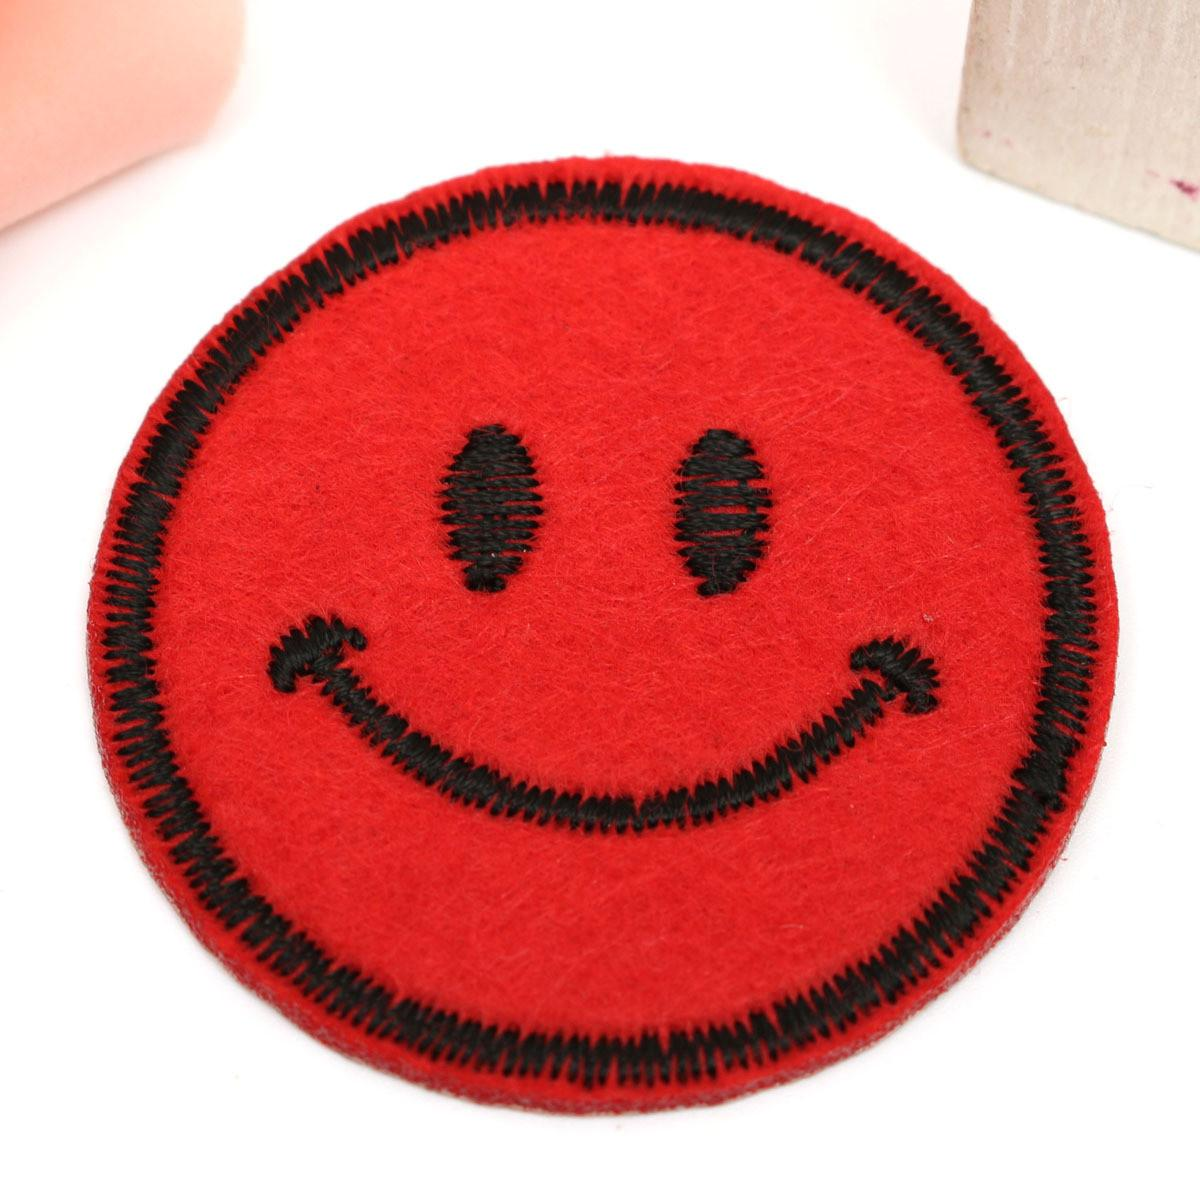 Round Smile Embroidery Diy Fabric Sticker Patch